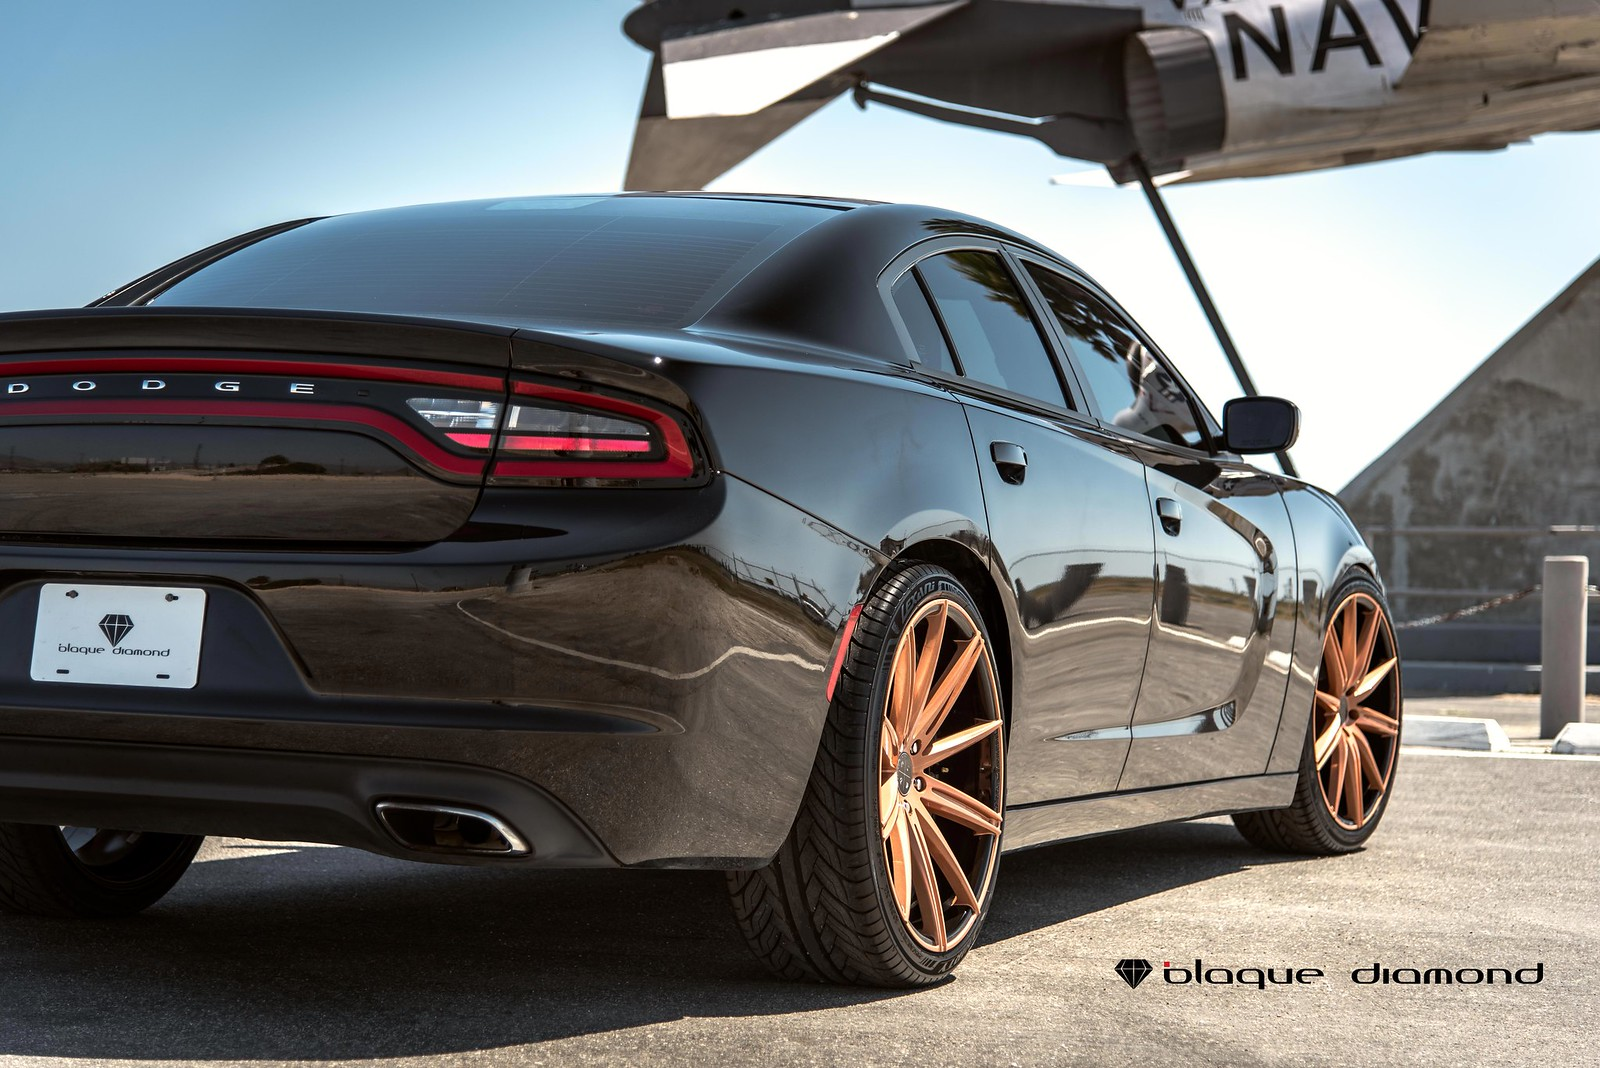 2014_Dodge_Charger_BD9_22_inch_Penny_Copper_Gloss_Black_Barrel-4